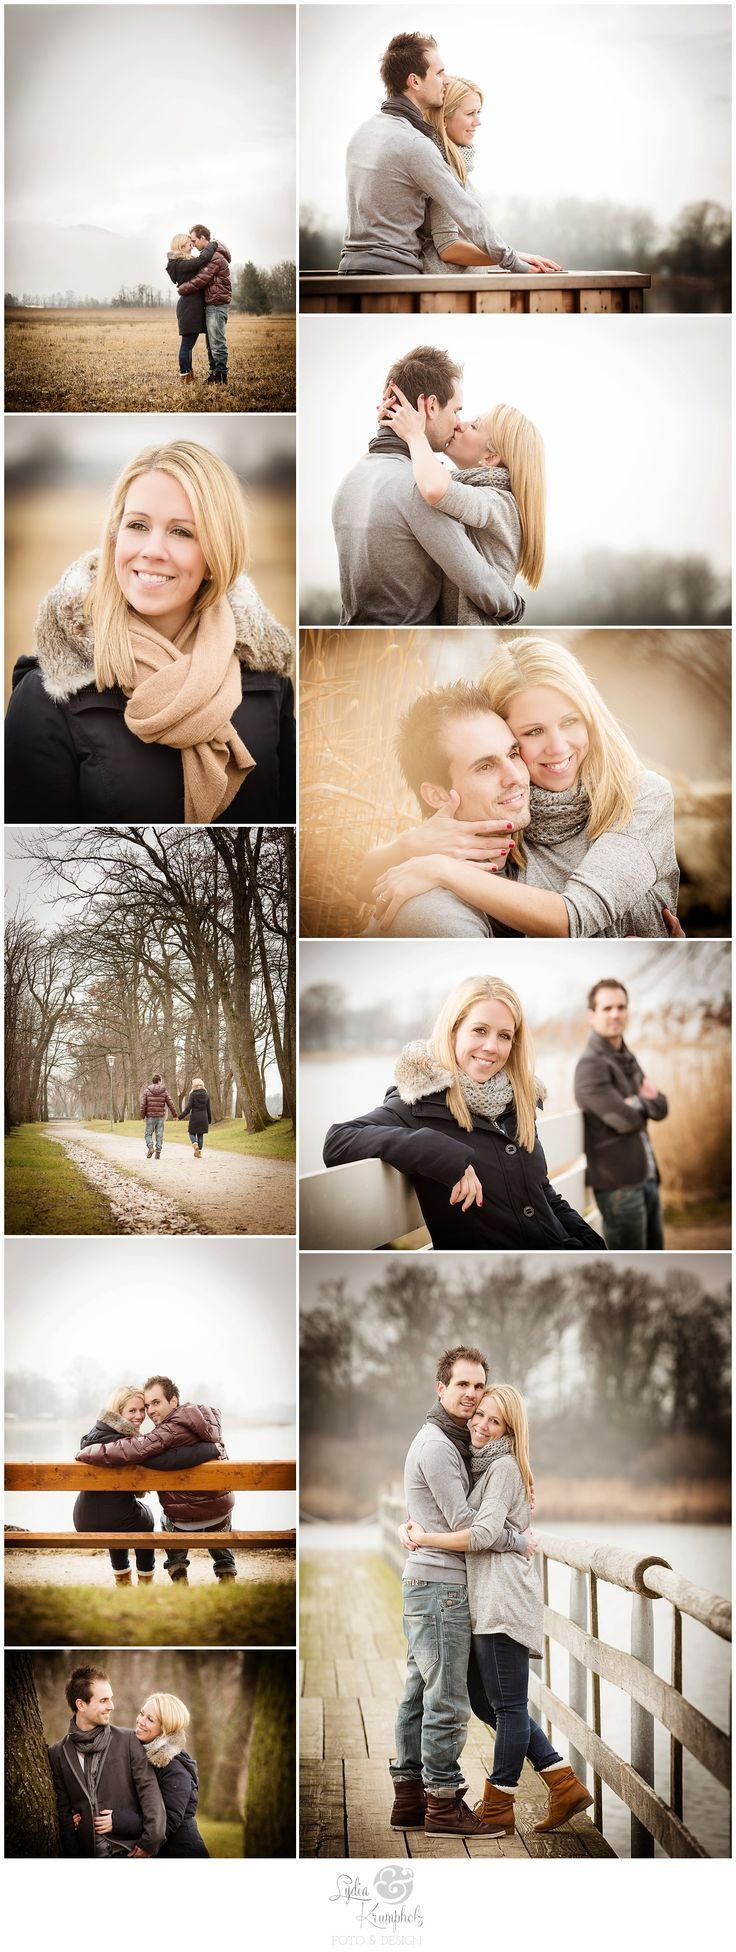 Pre-Wedding Fotoshooting im Winter am Chiemsee (Januar) #engagementsession #wint... - Wedding Fotoshooting